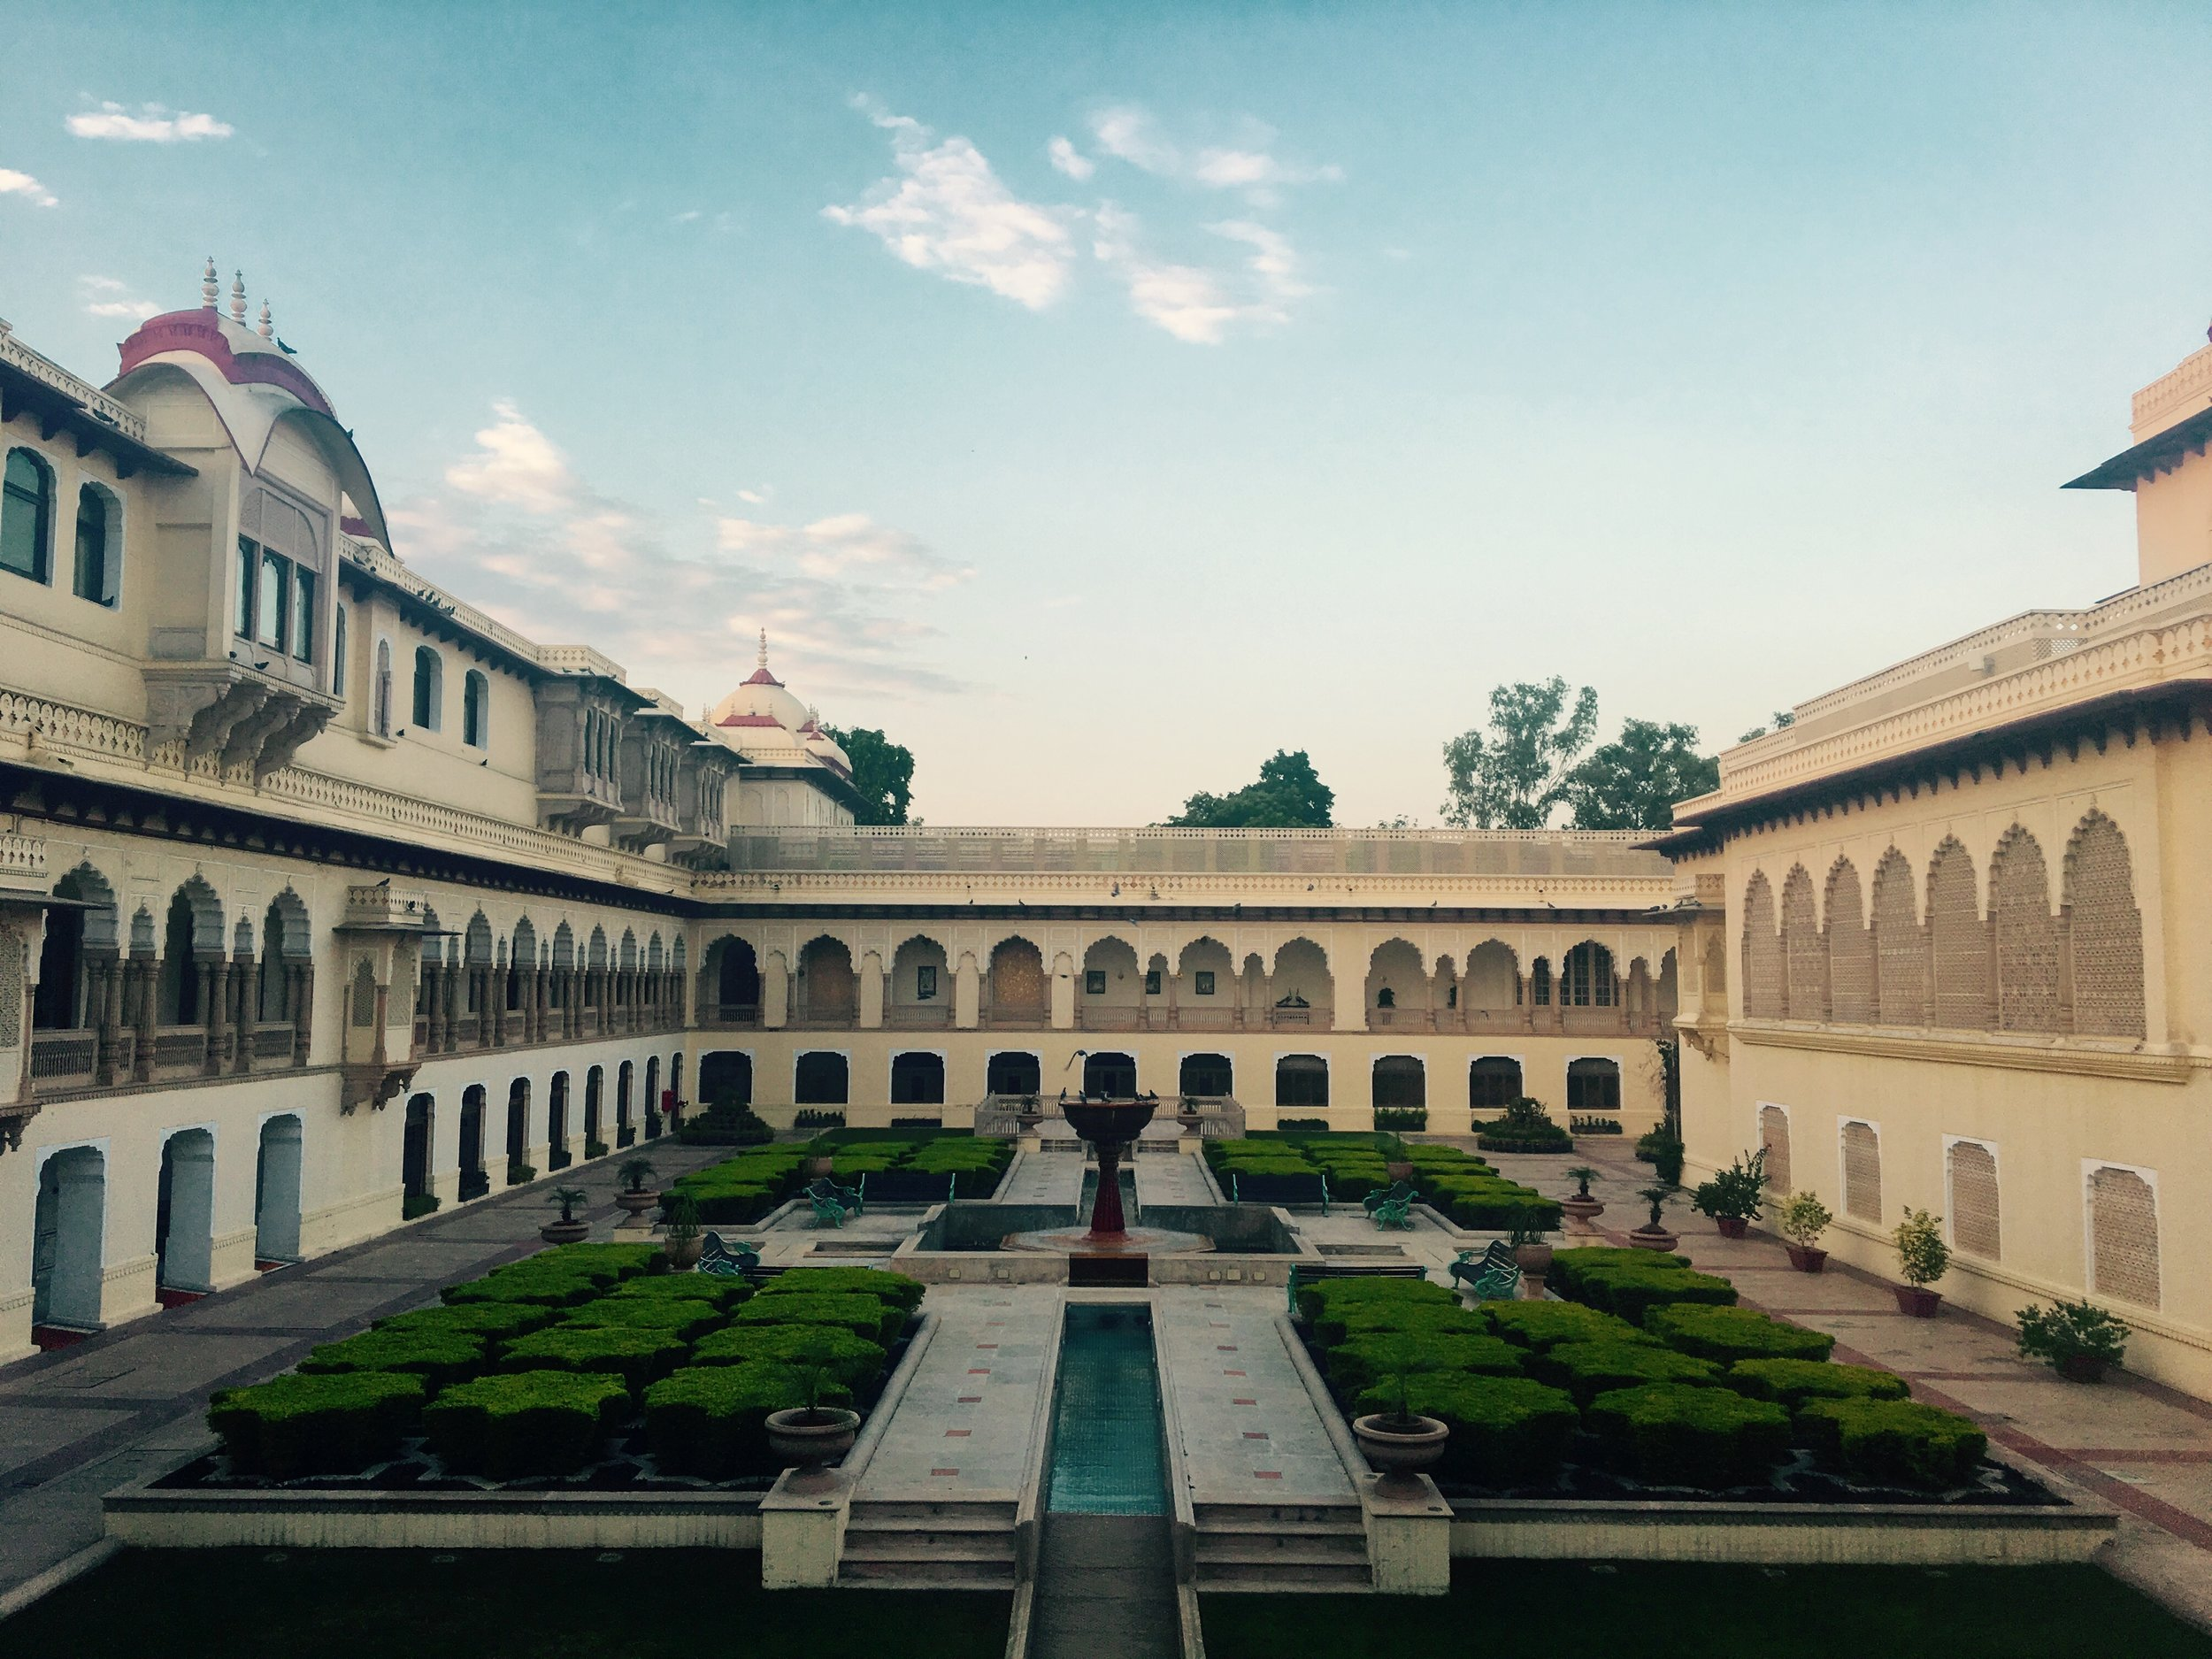 The seat of the Maharaja, Rambagh Palace is now converted into a Luxury Hotel run by the Taj Group. Within is an oasis and absolute serenity, a cocoon away from the burgeoning city outside!